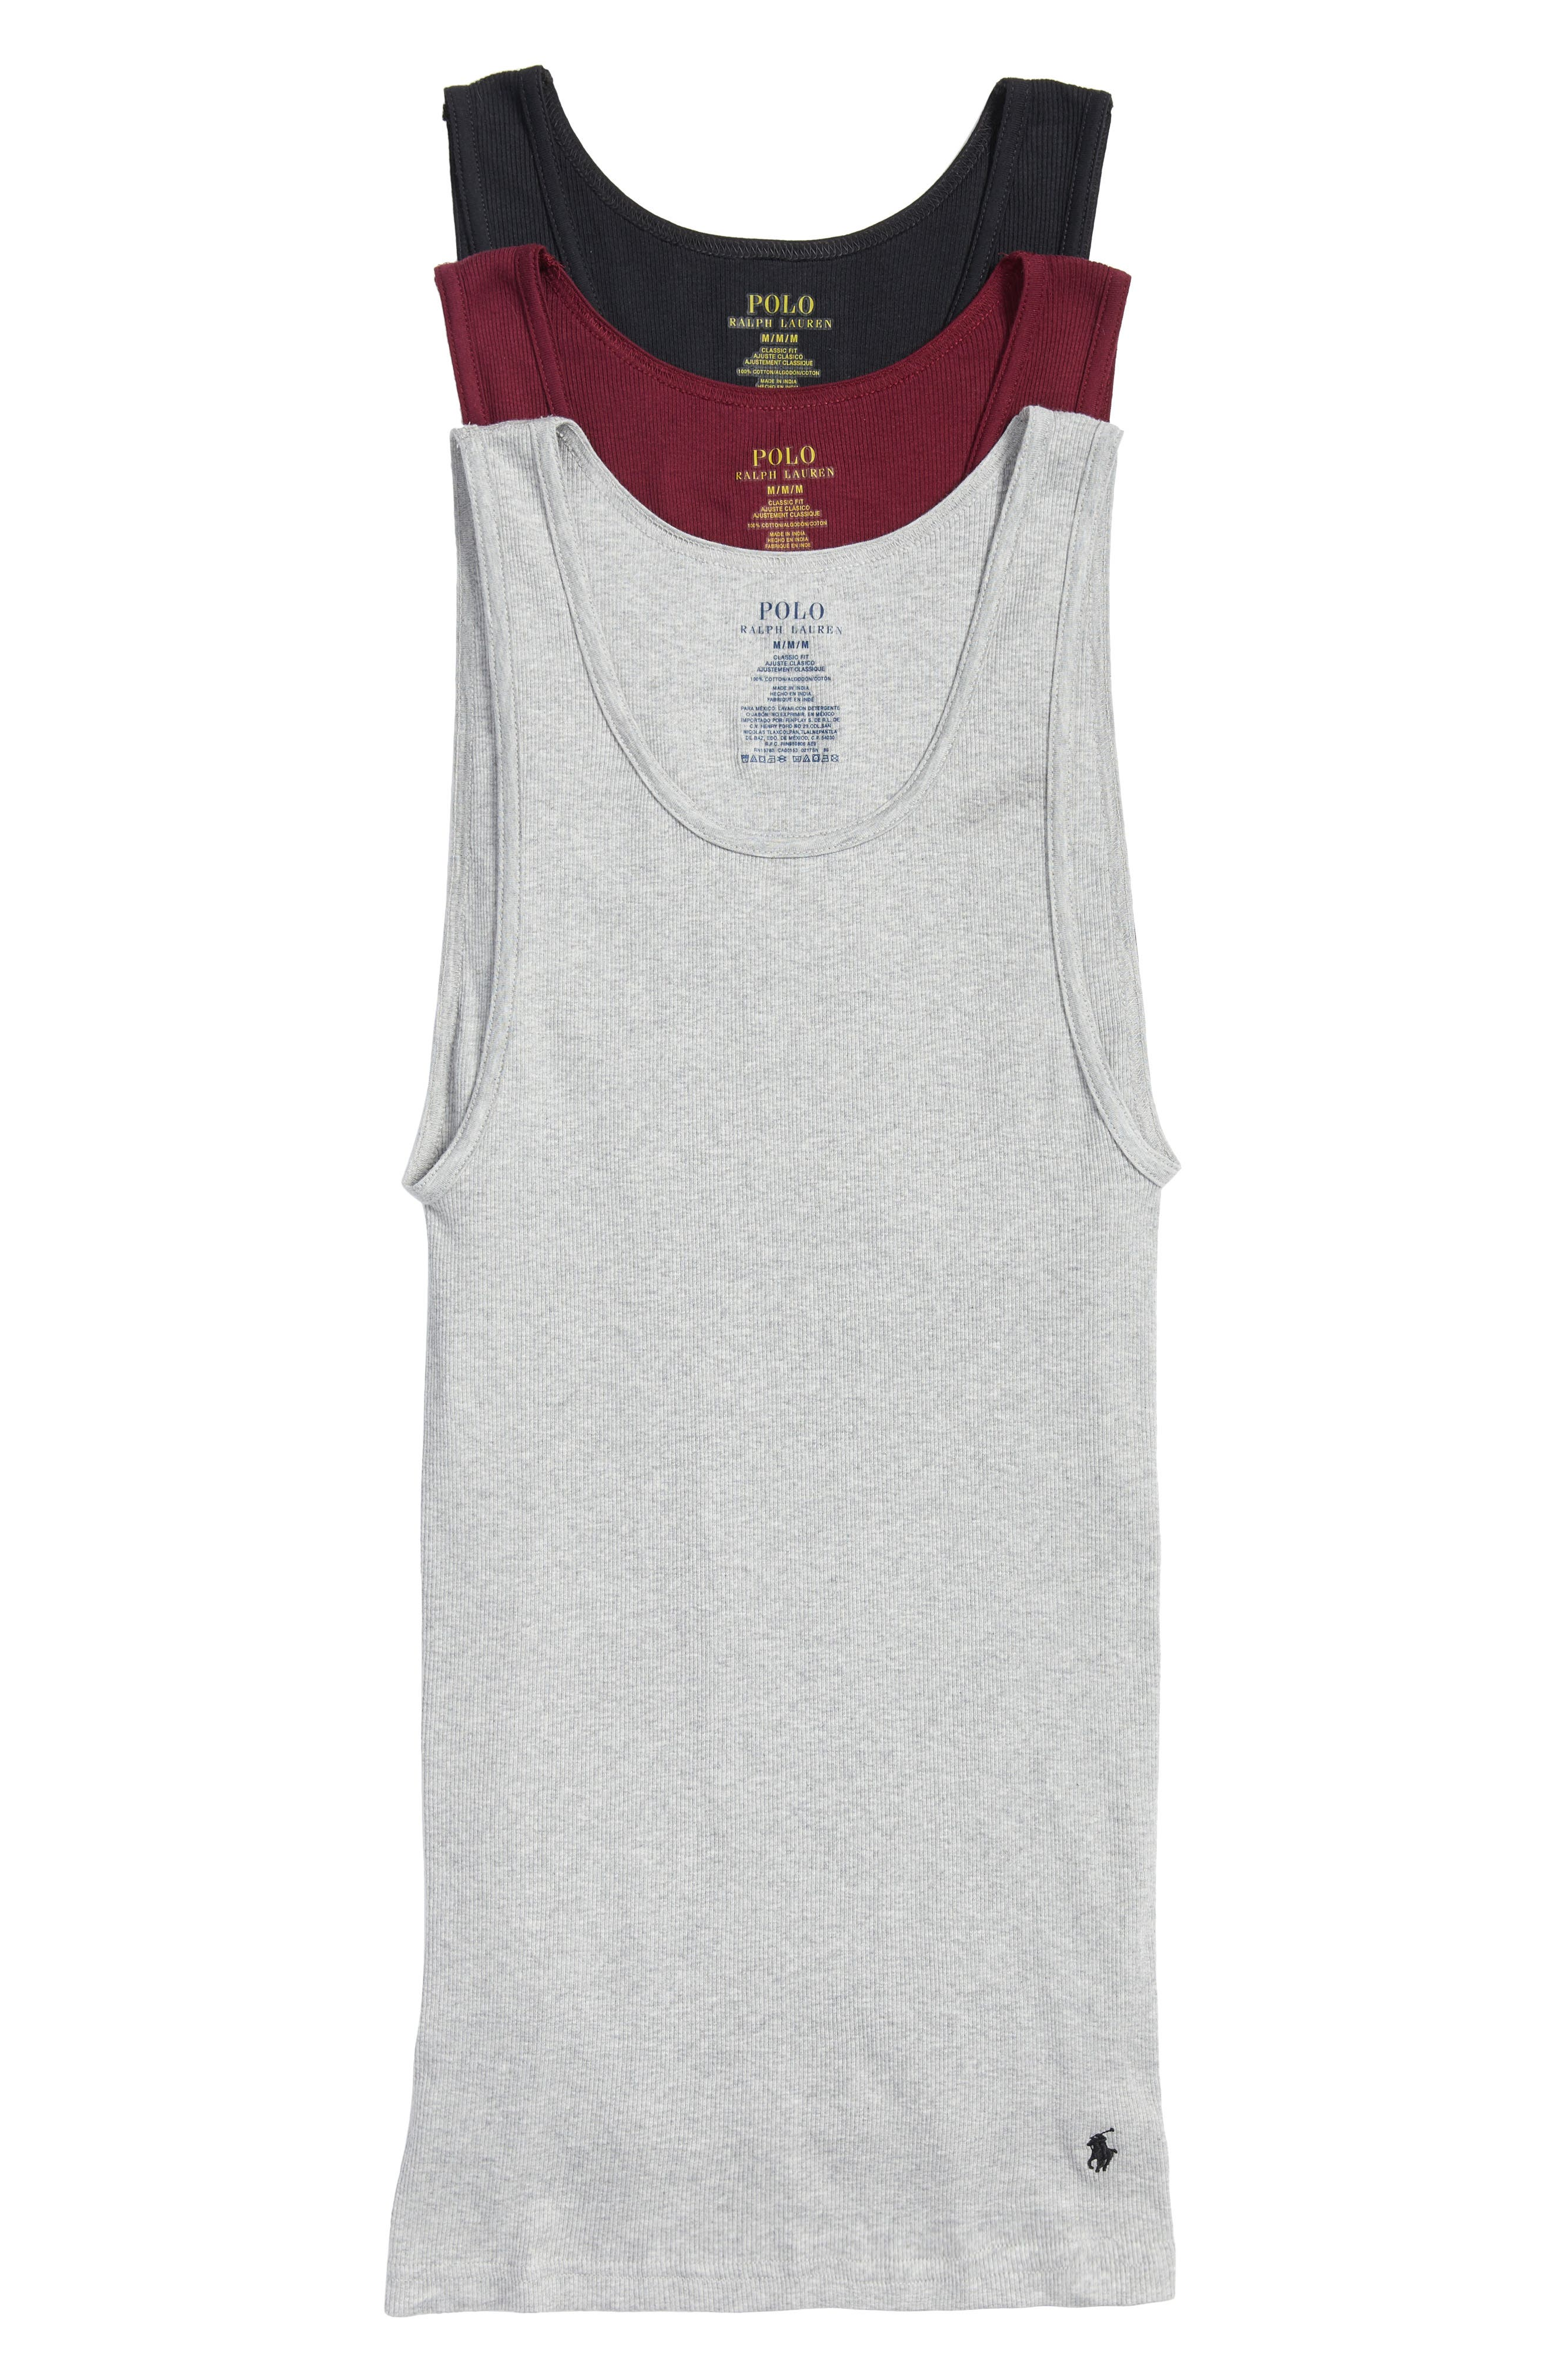 Ralph Lauren 3-Pack Classic Ribbed Tank Tops,                             Main thumbnail 1, color,                             Andover Heather/ Wine/ Black